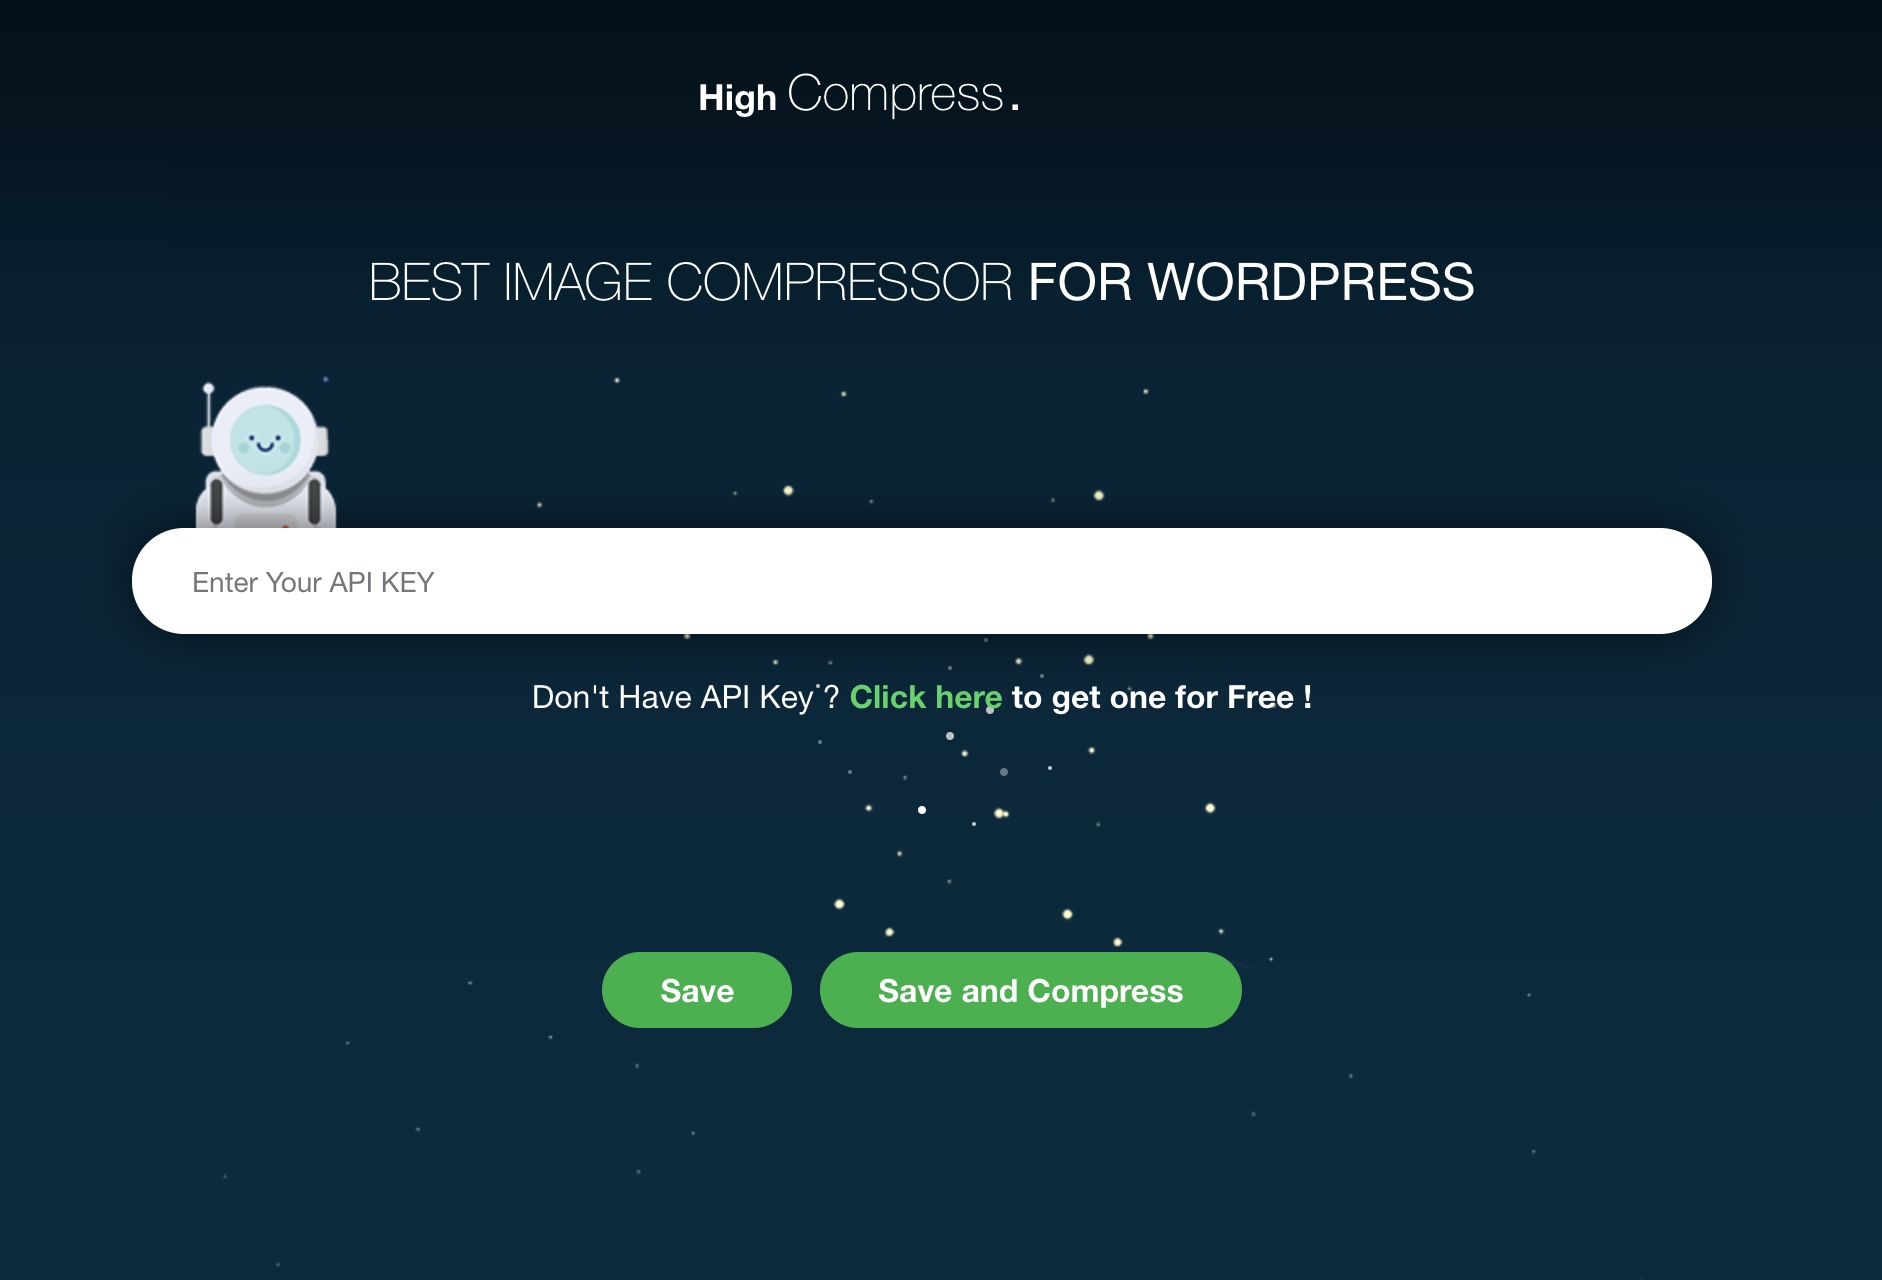 highcompress